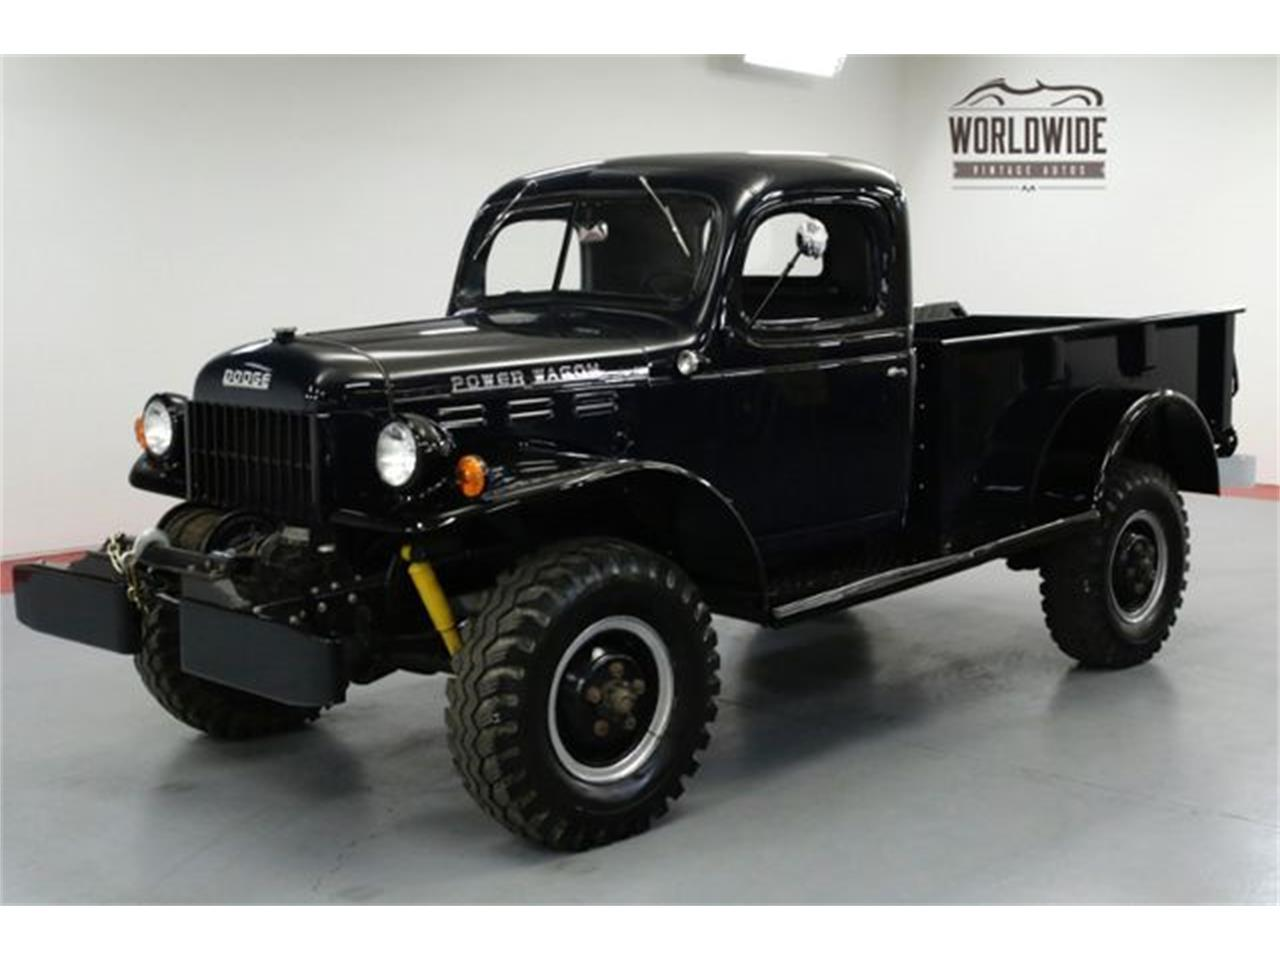 1947 Dodge Power Wagon 1942 Craigslist Large Picture Of Classic Located In Denver Colorado Offered 1280x960